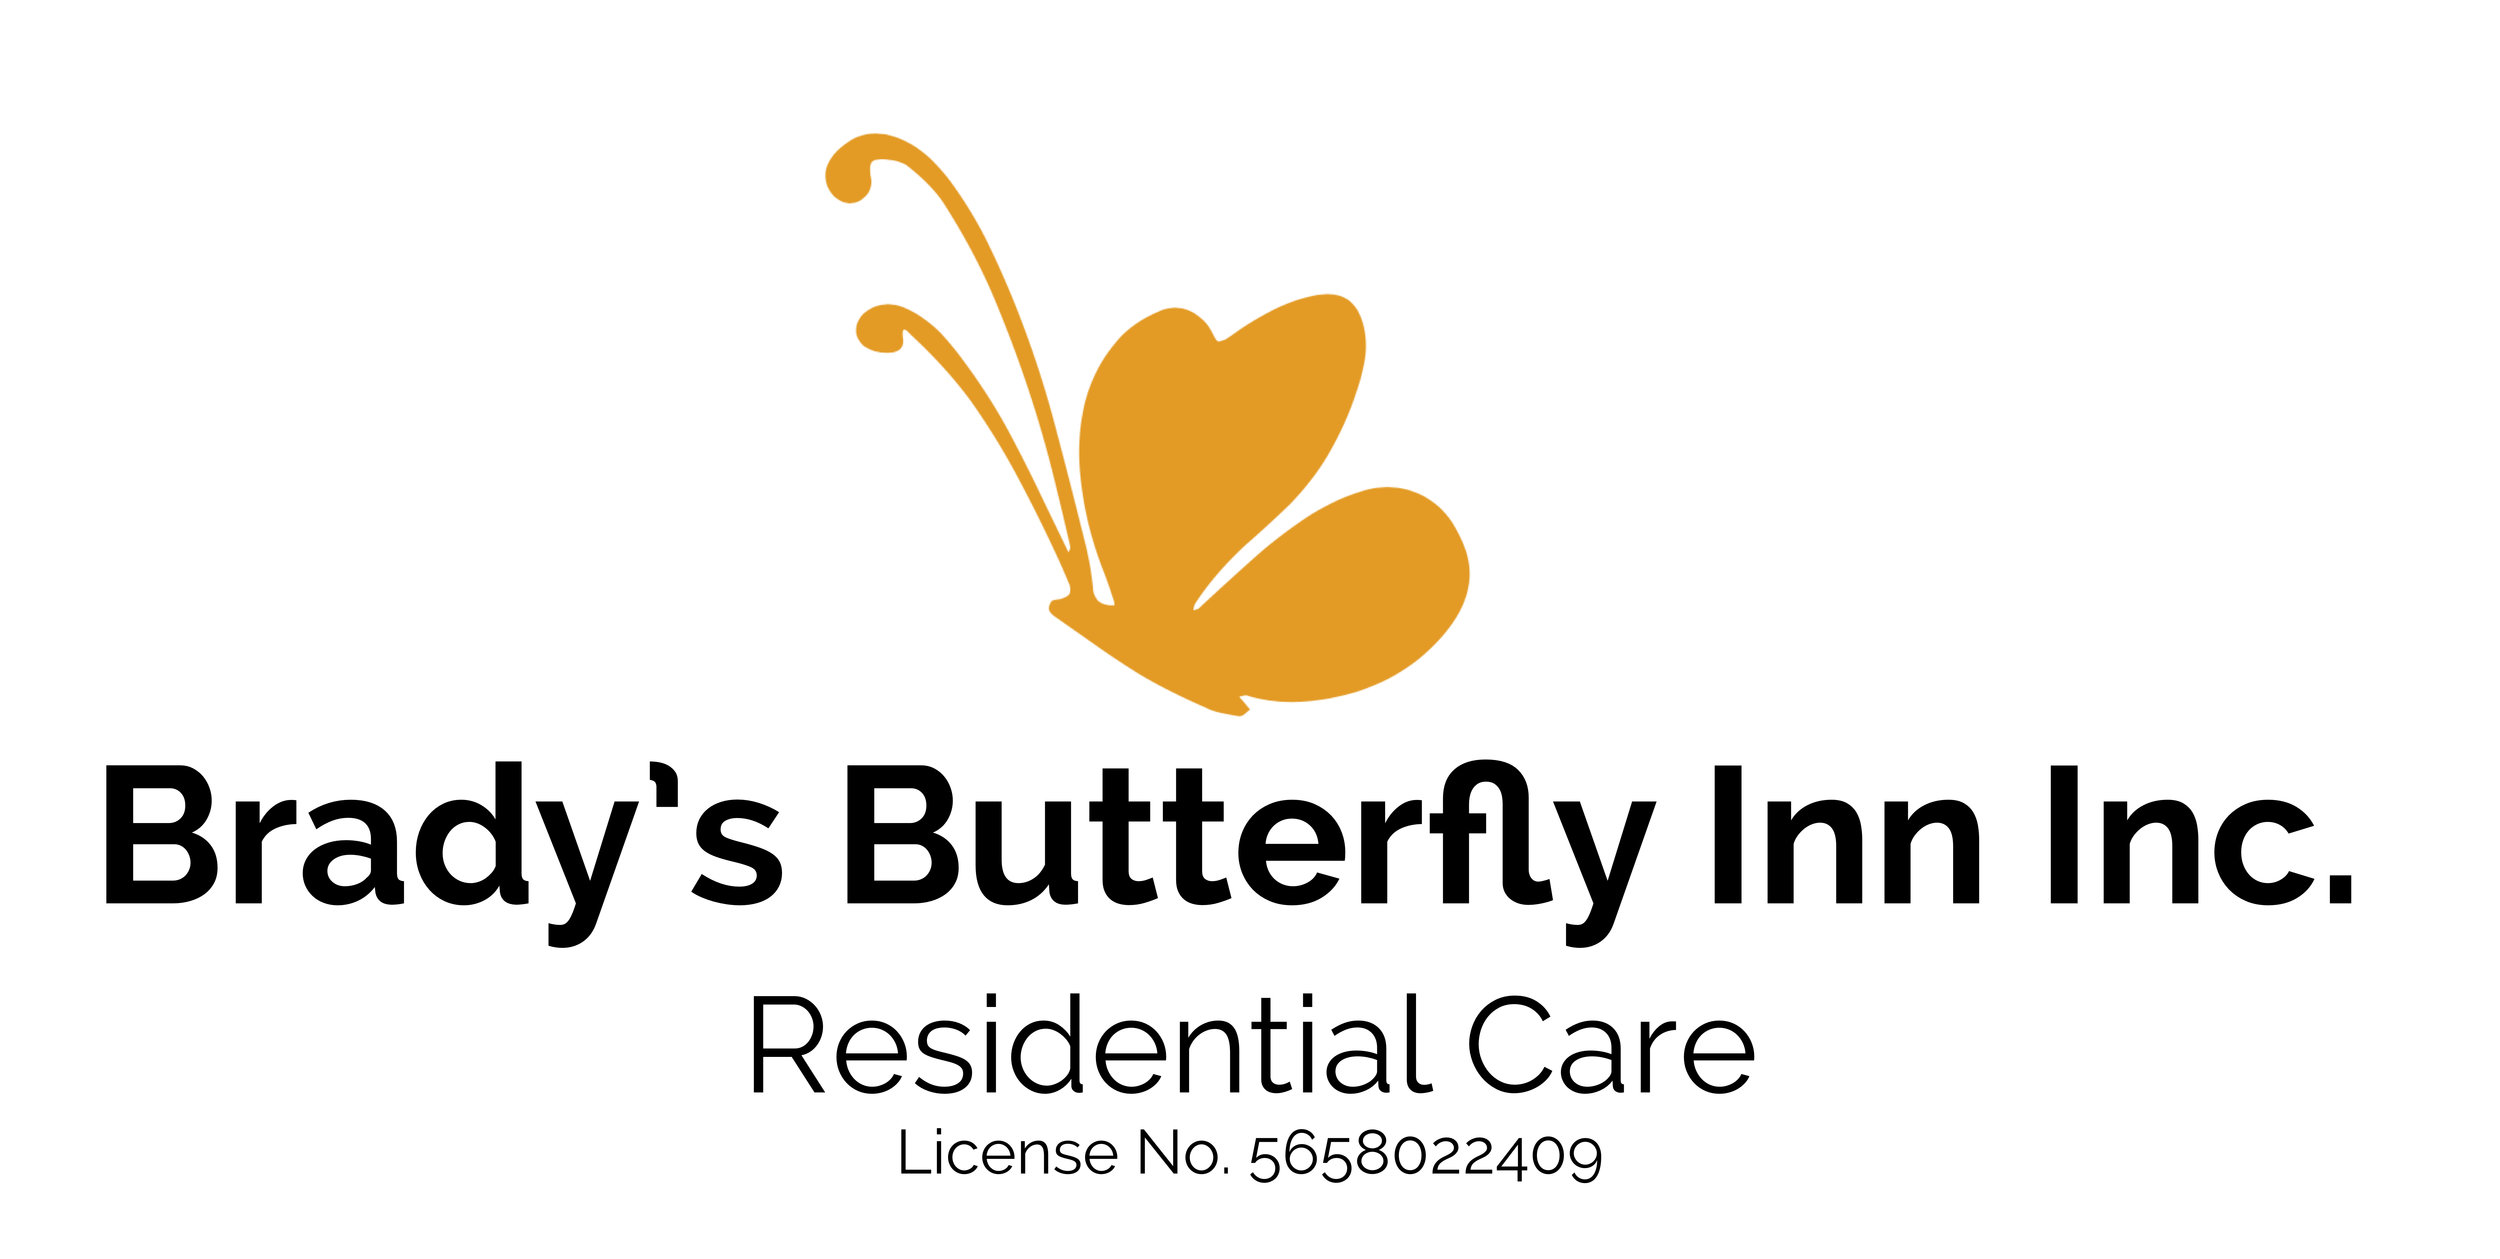 is now   The Butterfly Inn, LLC    License No. 56769911